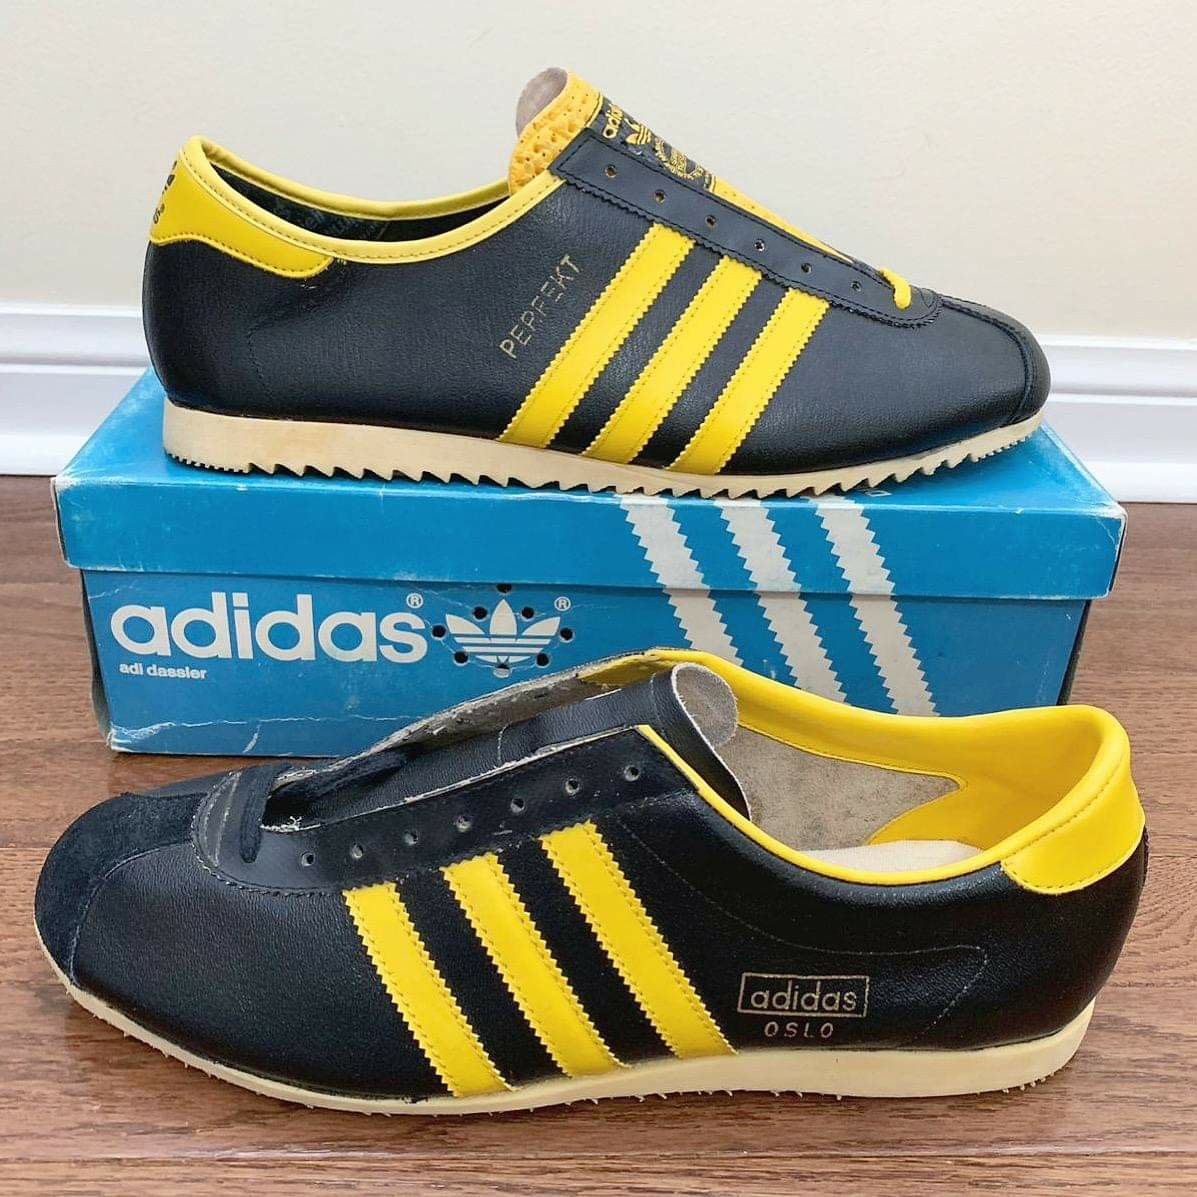 Vintage Austrian made Adidas Perfekt and West German Oslo